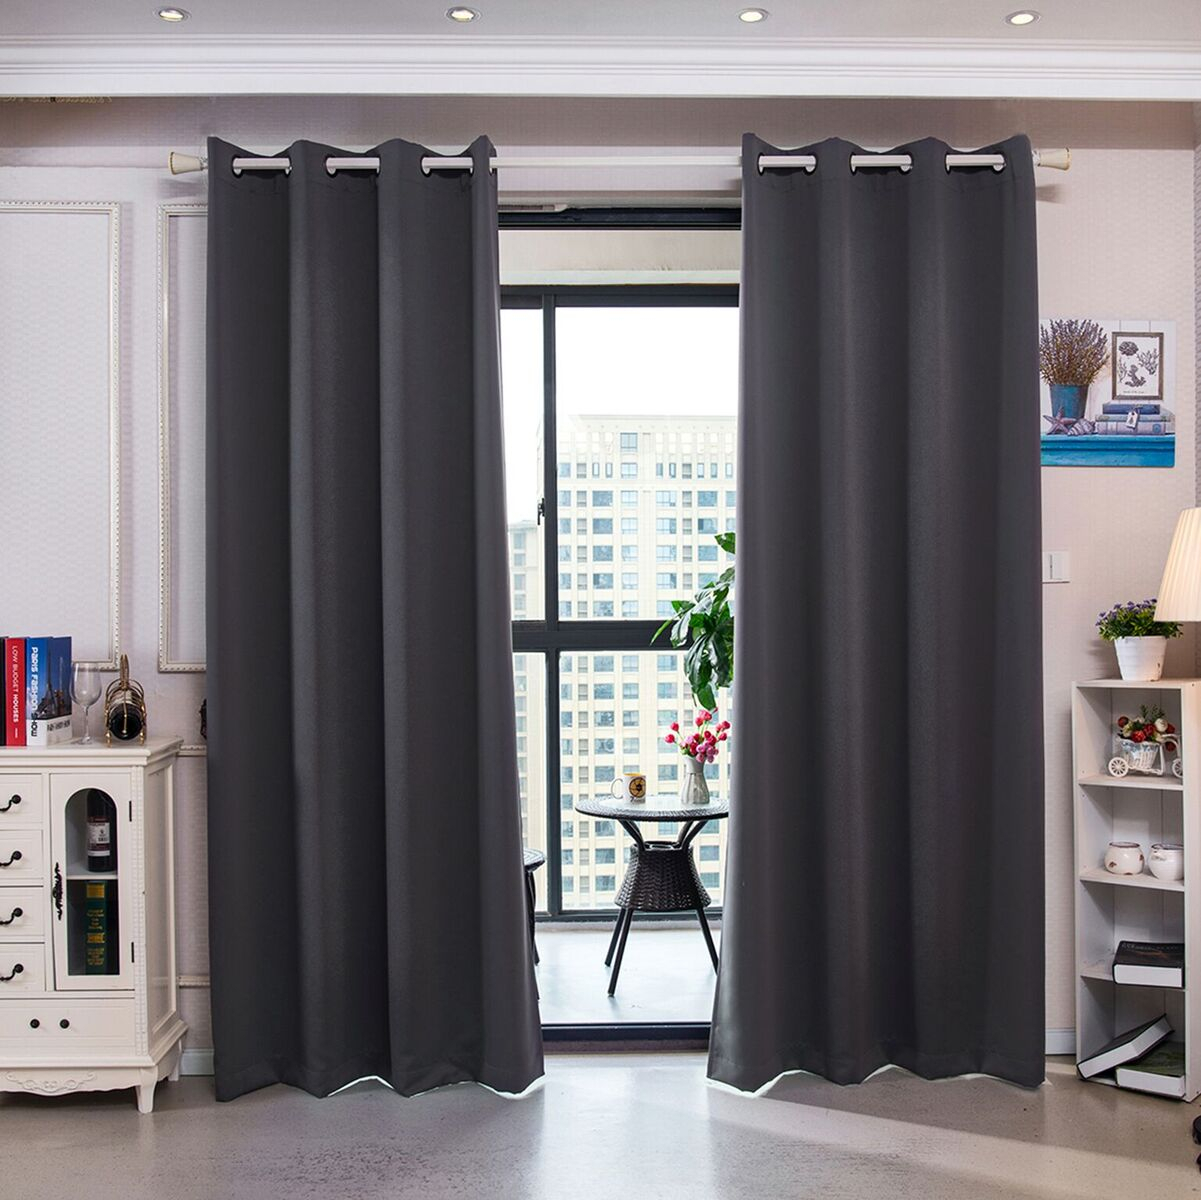 """Details About 84"""" Sparta Premium Solid Insulated Thermal Blackout Grommet Window Panelsele Inside Solid Insulated Thermal Blackout Curtain Panel Pairs (View 20 of 30)"""